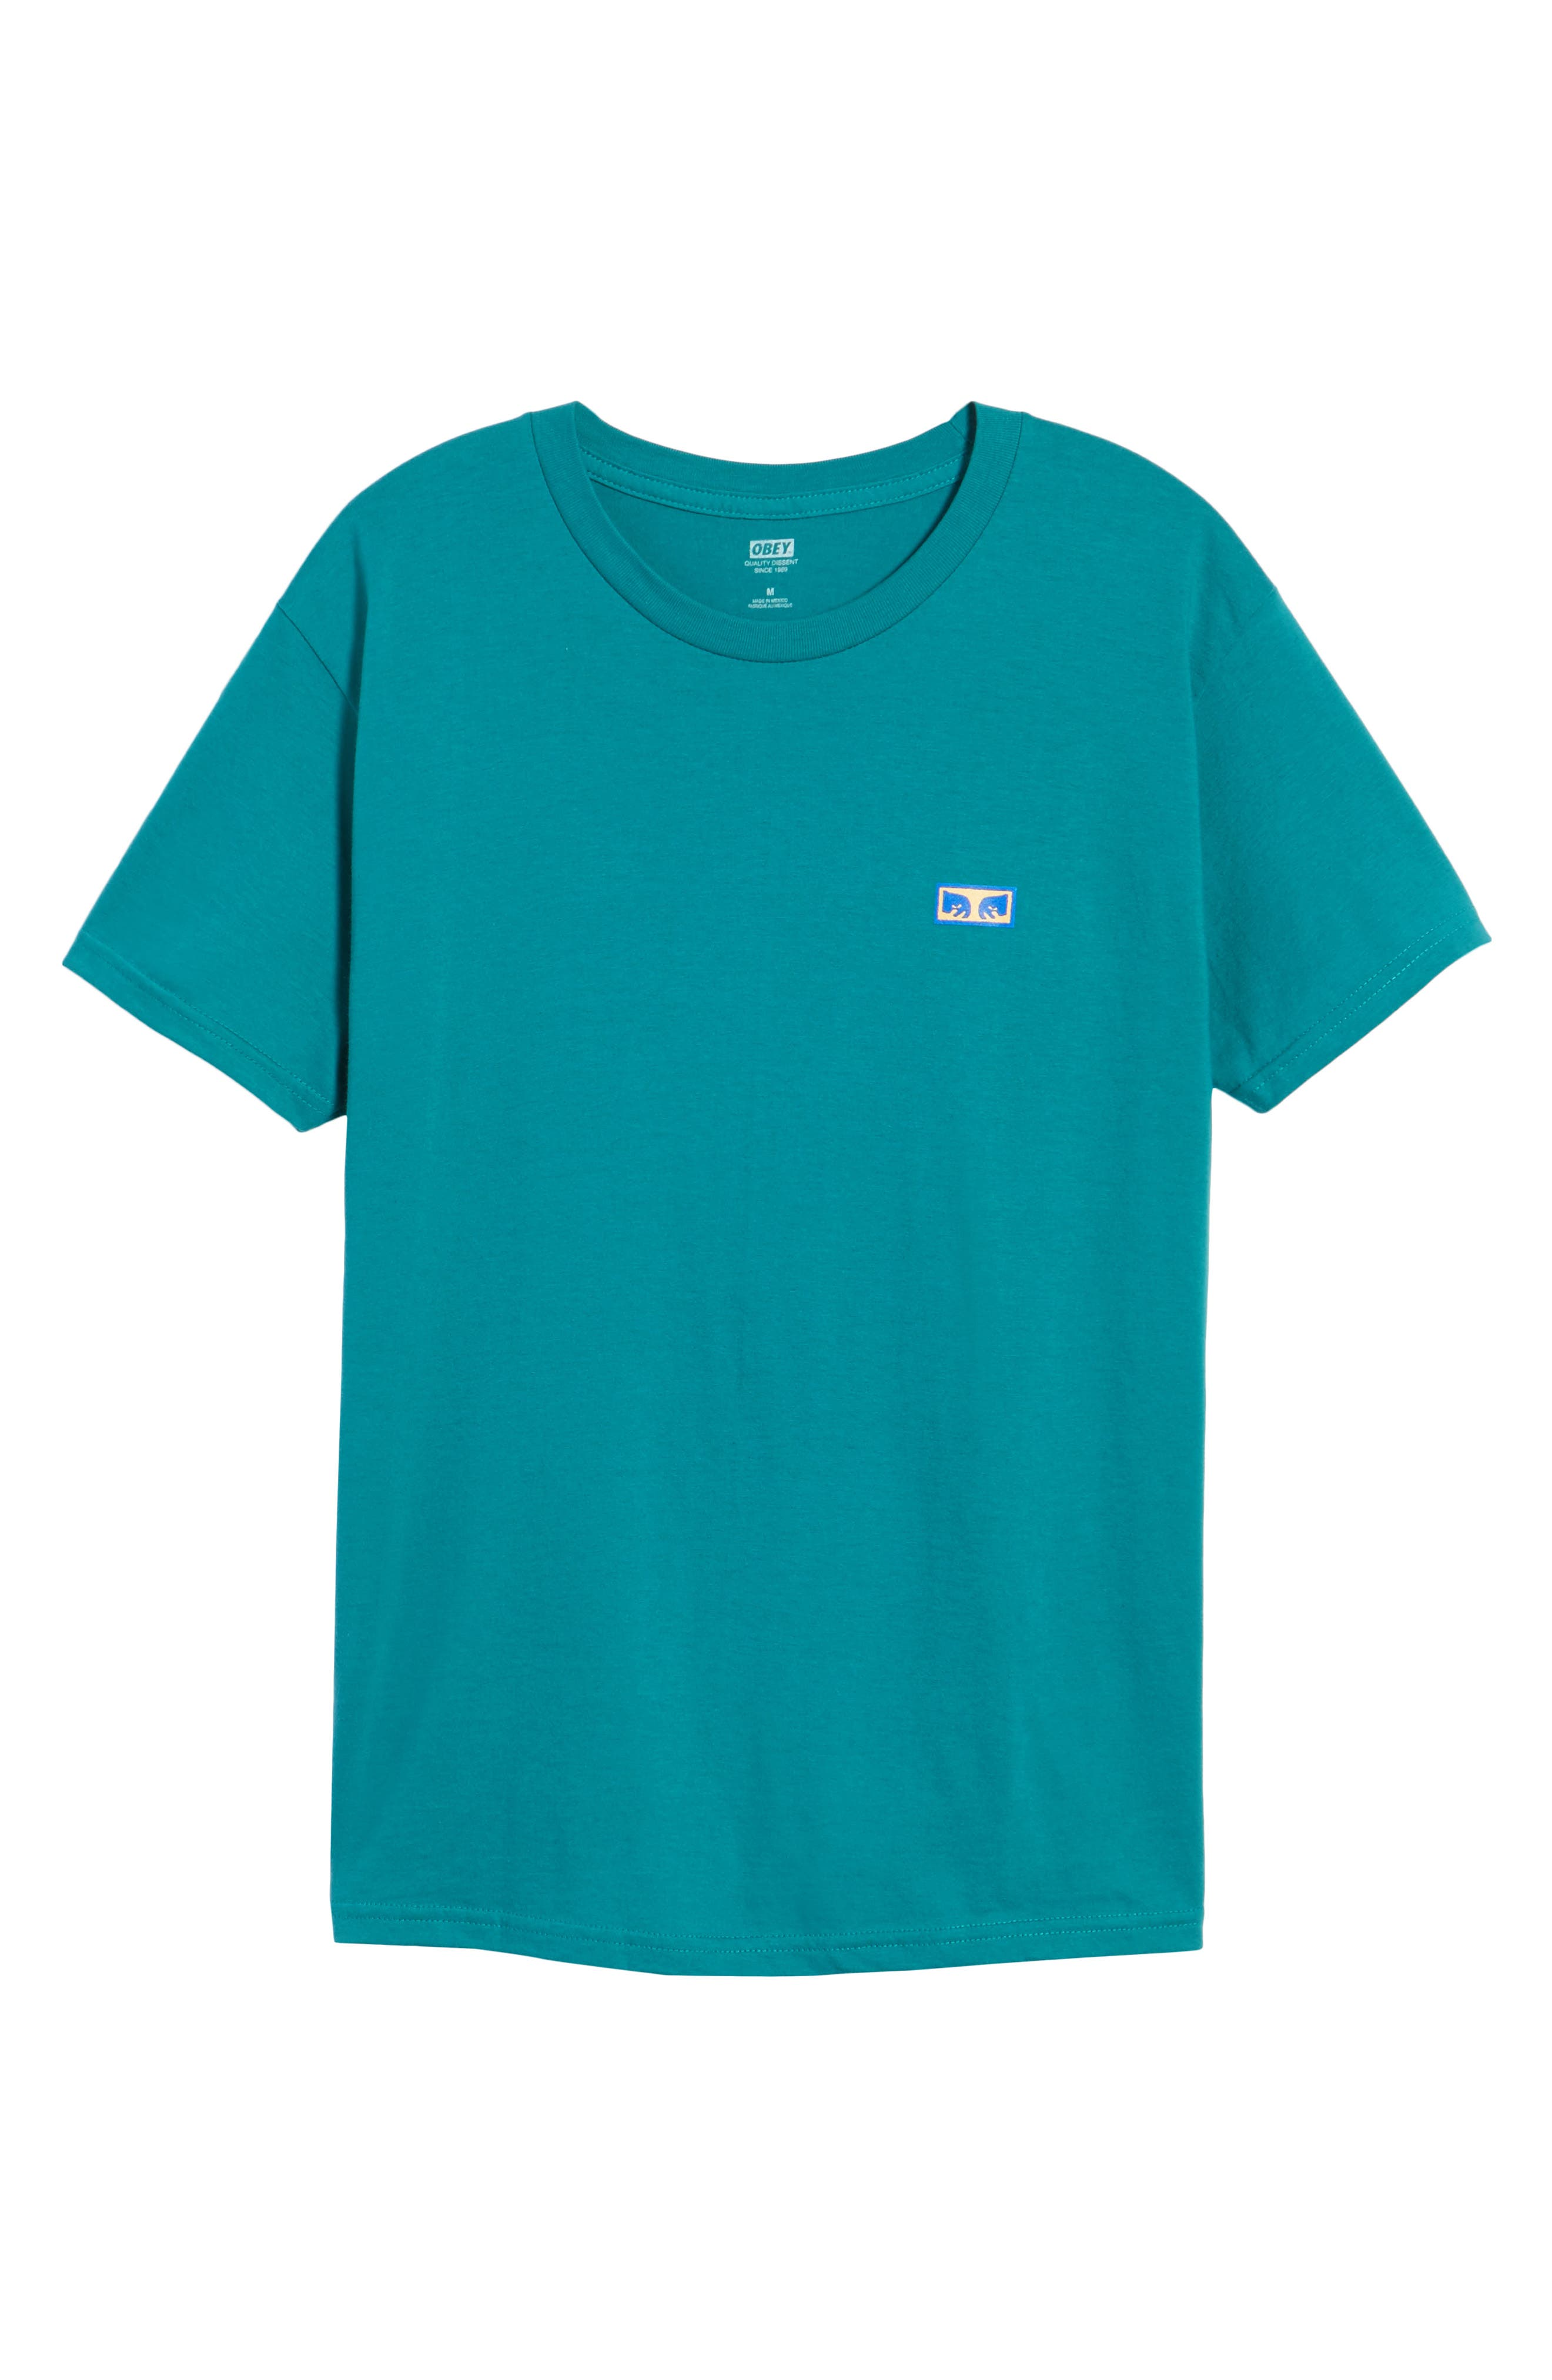 Flashback Graphic T-Shirt,                             Alternate thumbnail 6, color,                             Teal